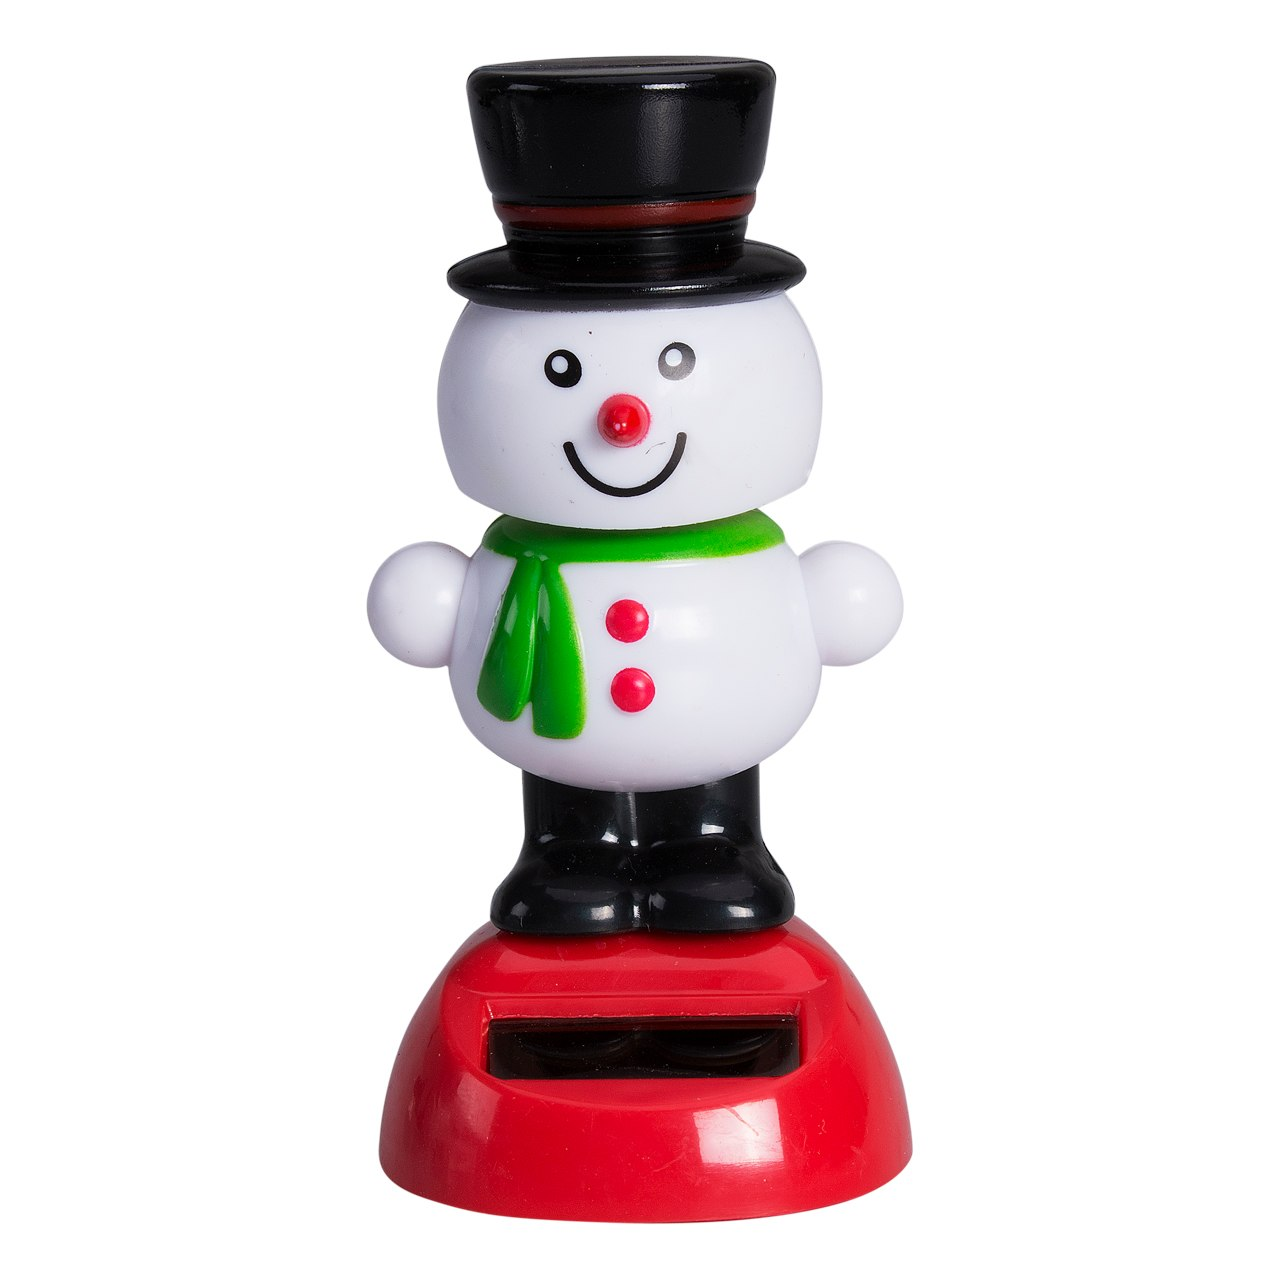 Costbuys  Solar Powered Dancing Toy Christmas Santa Snowman Car Table Decor Ornaments White Red Xmas Decoration Gift - 10